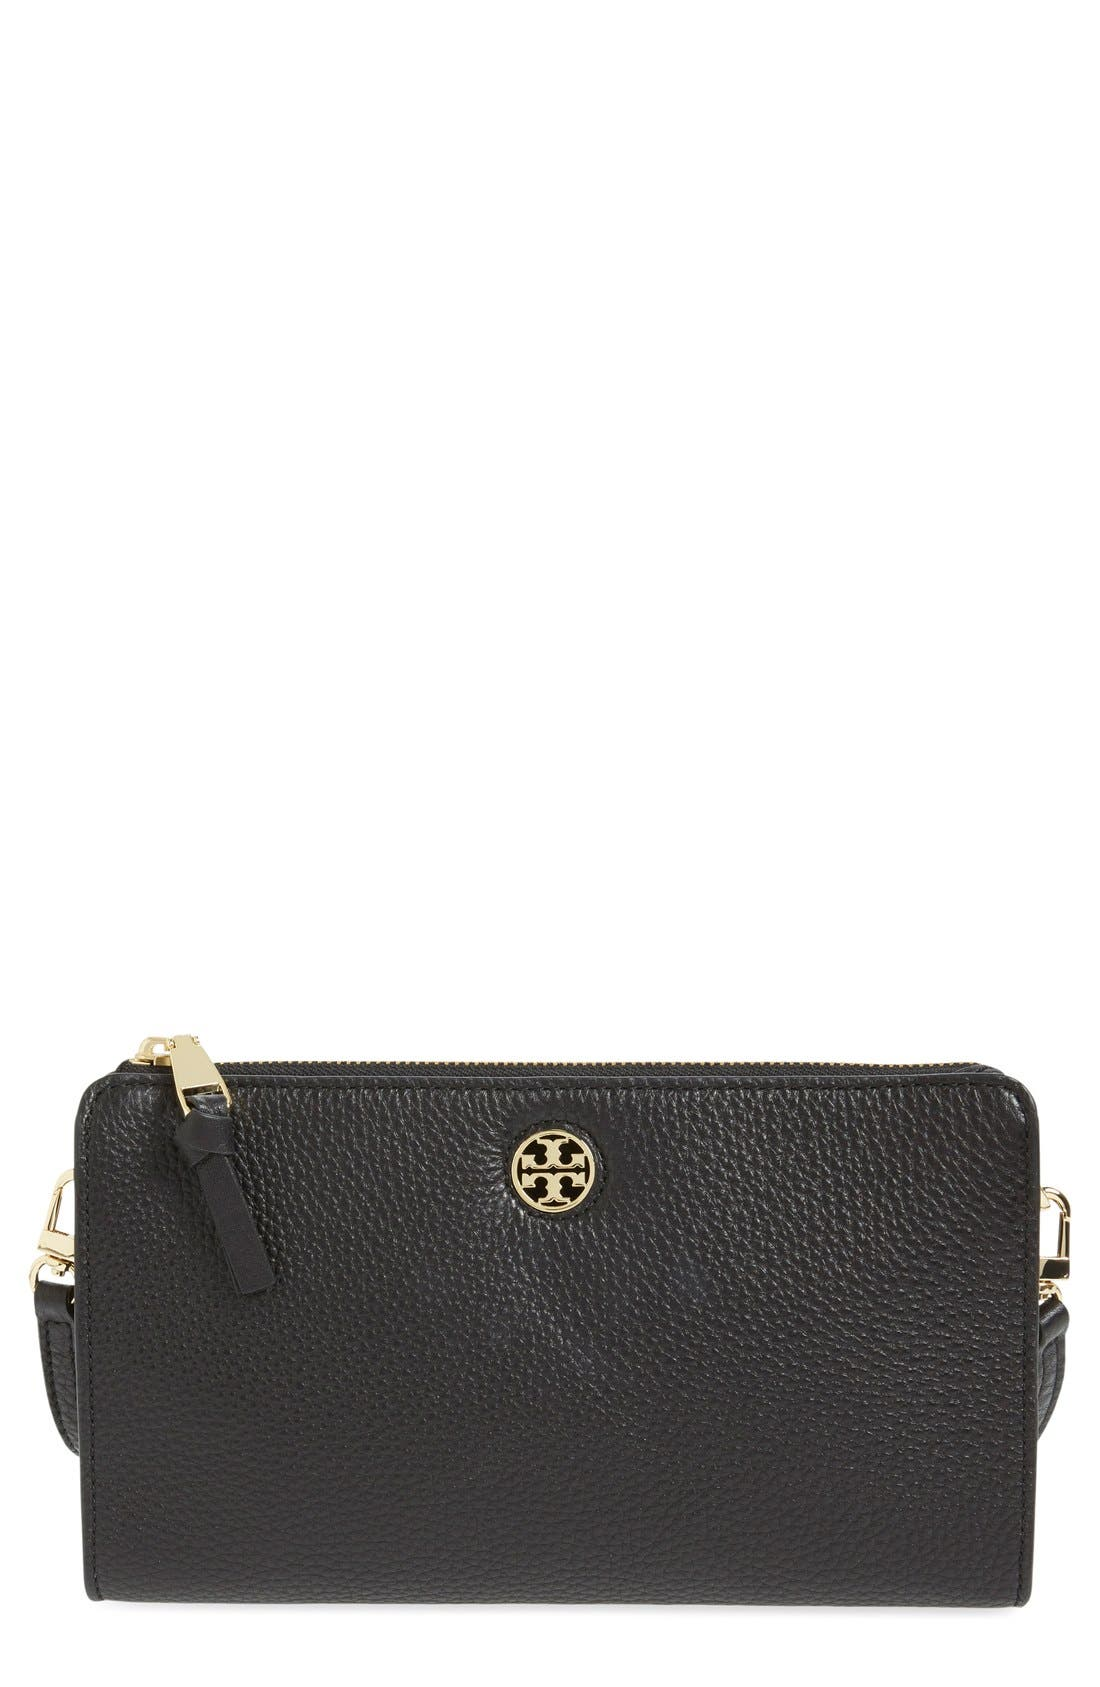 Main Image - Tory Burch 'Robinson' Pebbled Leather Crossbody Wallet